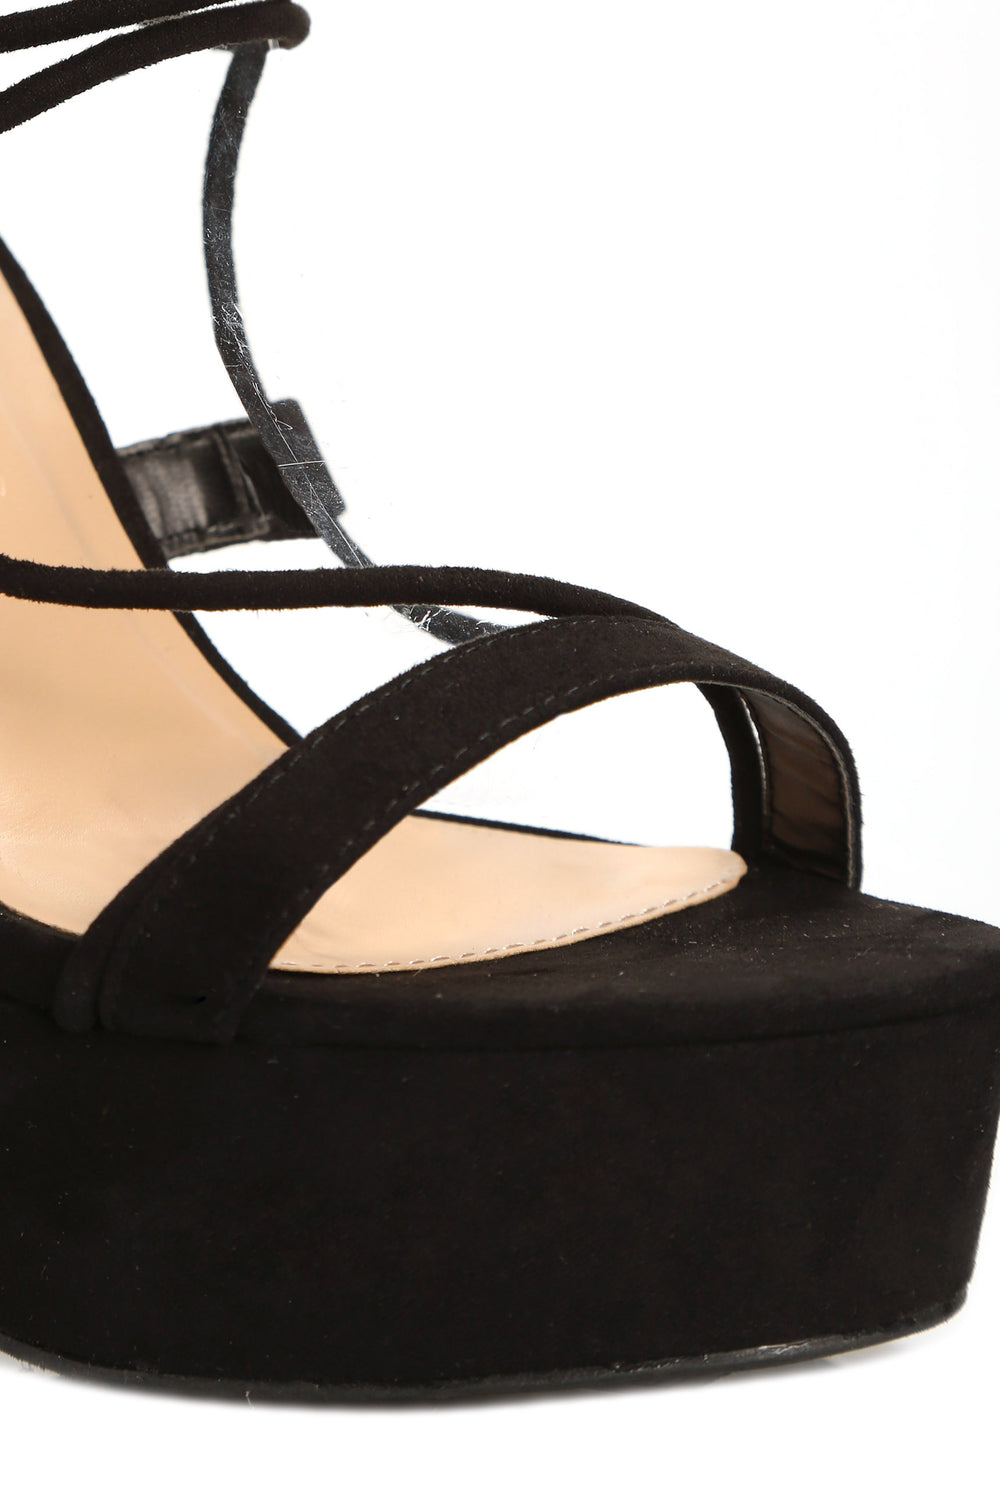 Give Me A Break Heel - Black